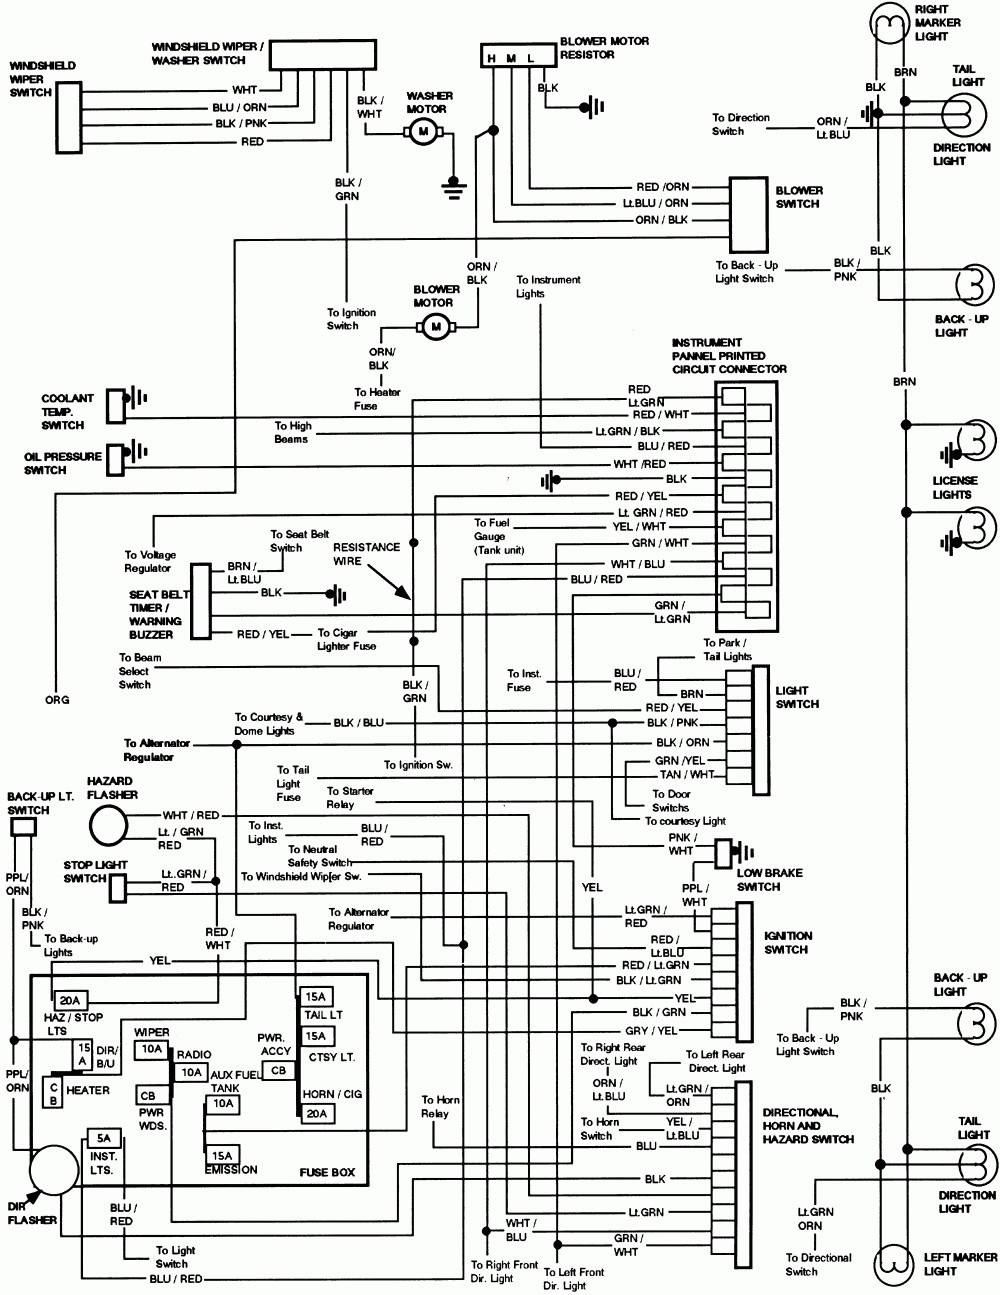 medium resolution of diagram also mustang wiring harness diagram on 1986 mustang wiring diagram also mustang wiring harness diagram on 1986 mustang wiring